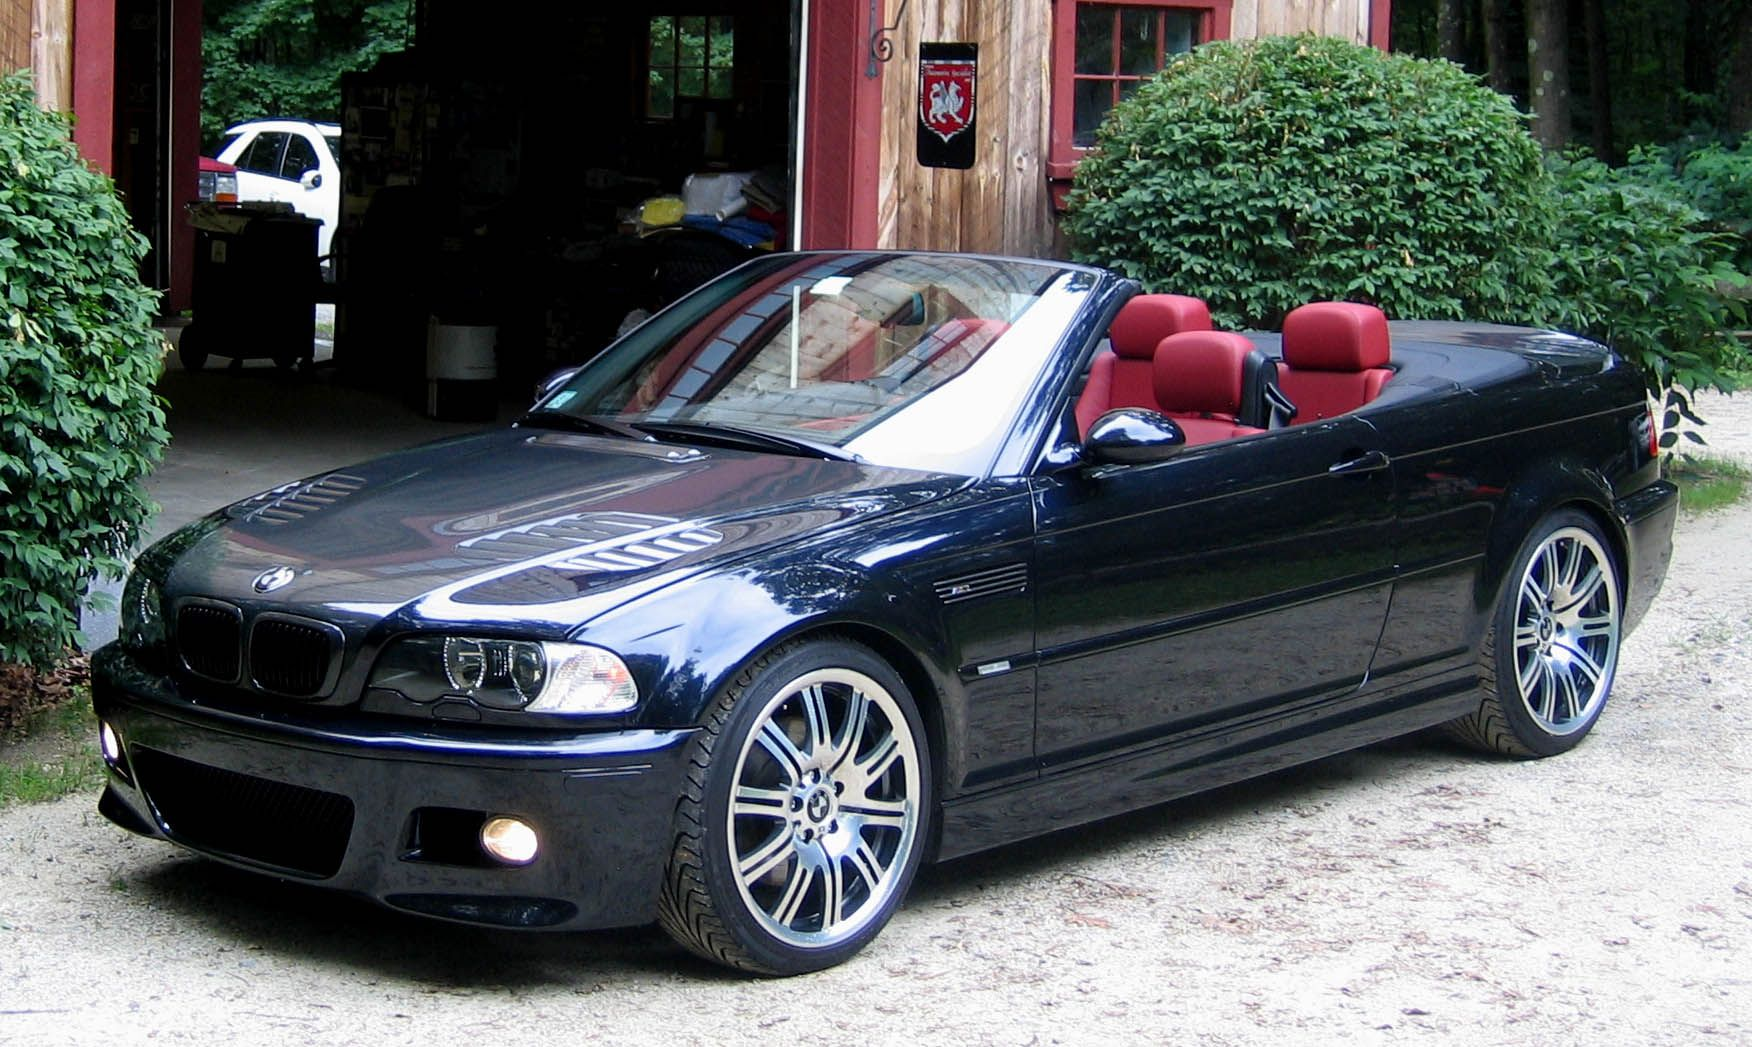 e46 m3 convertible recommended things pinterest m3 convertible e46 m3 and convertible. Black Bedroom Furniture Sets. Home Design Ideas